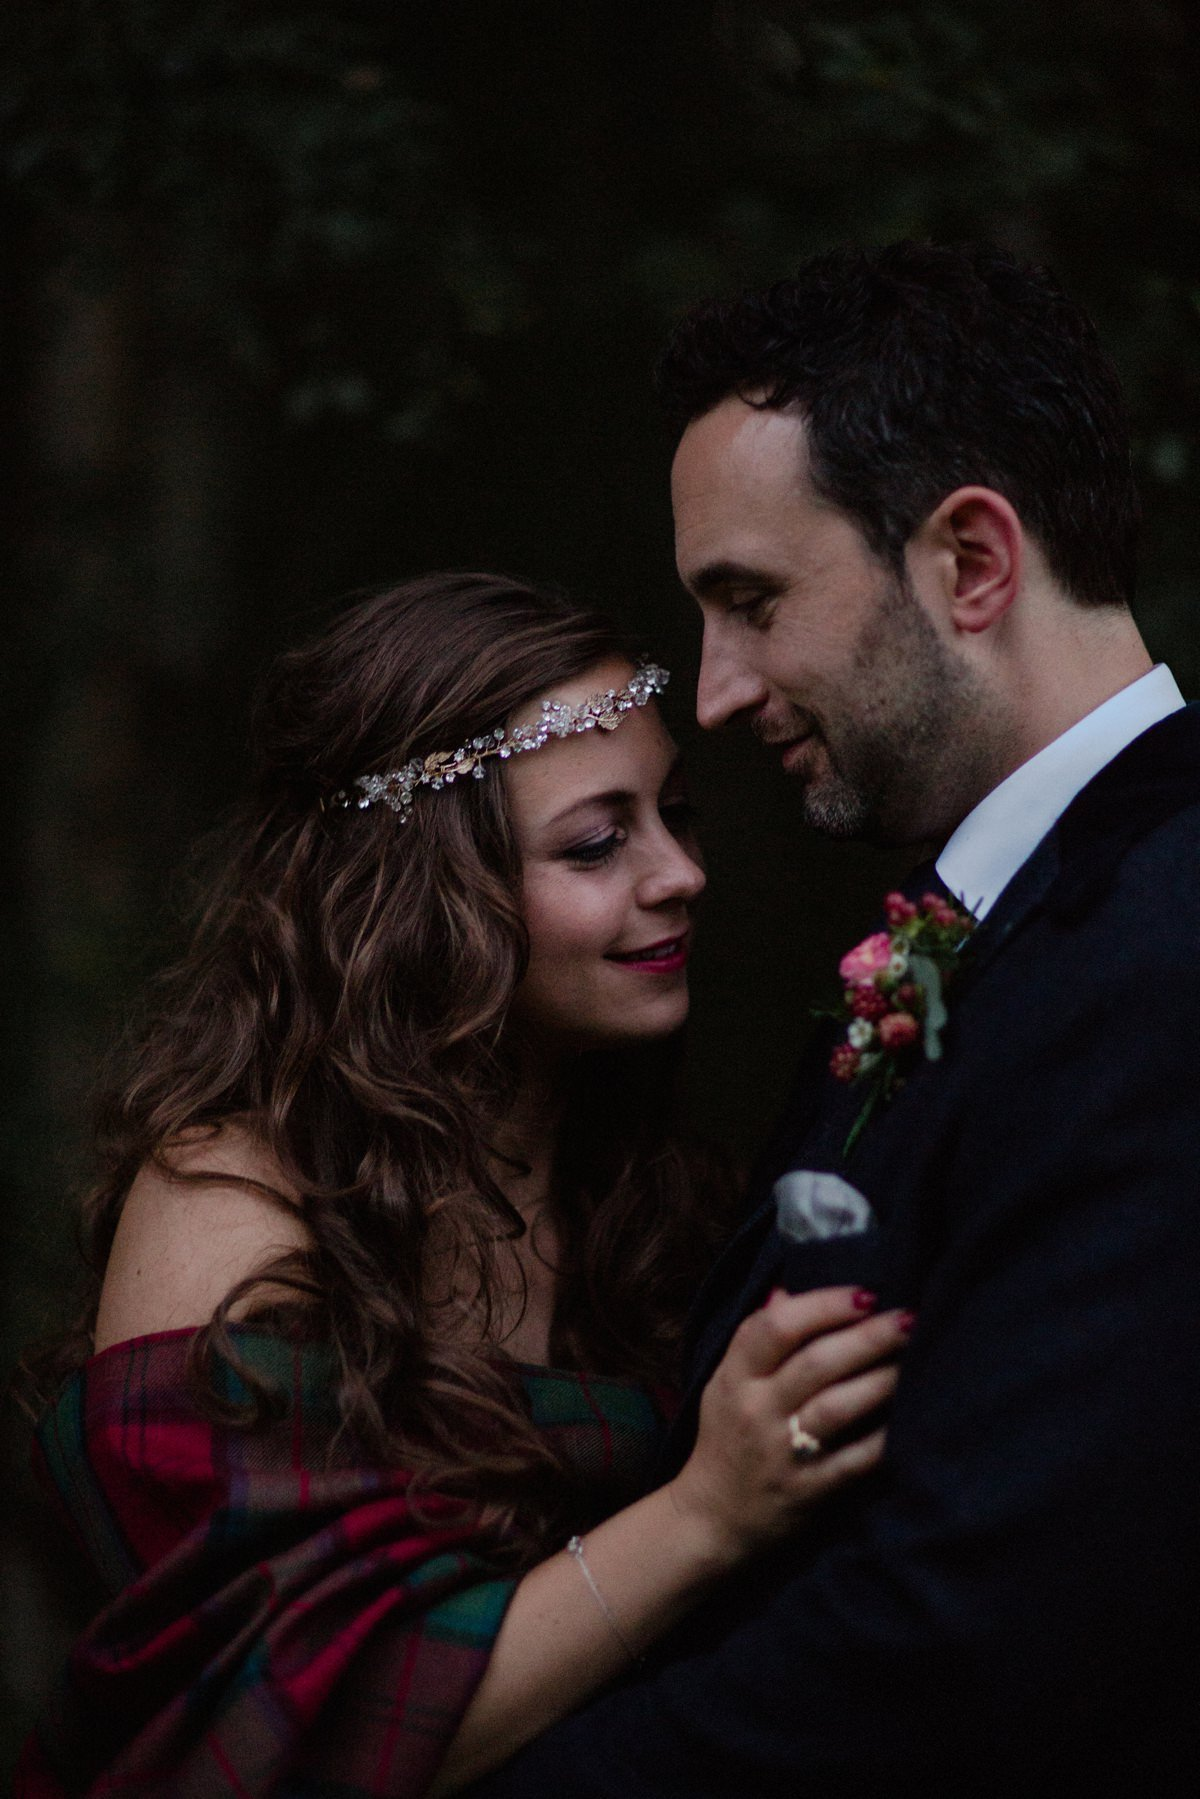 Close moody portrait of wedding couple in a romantic embrace